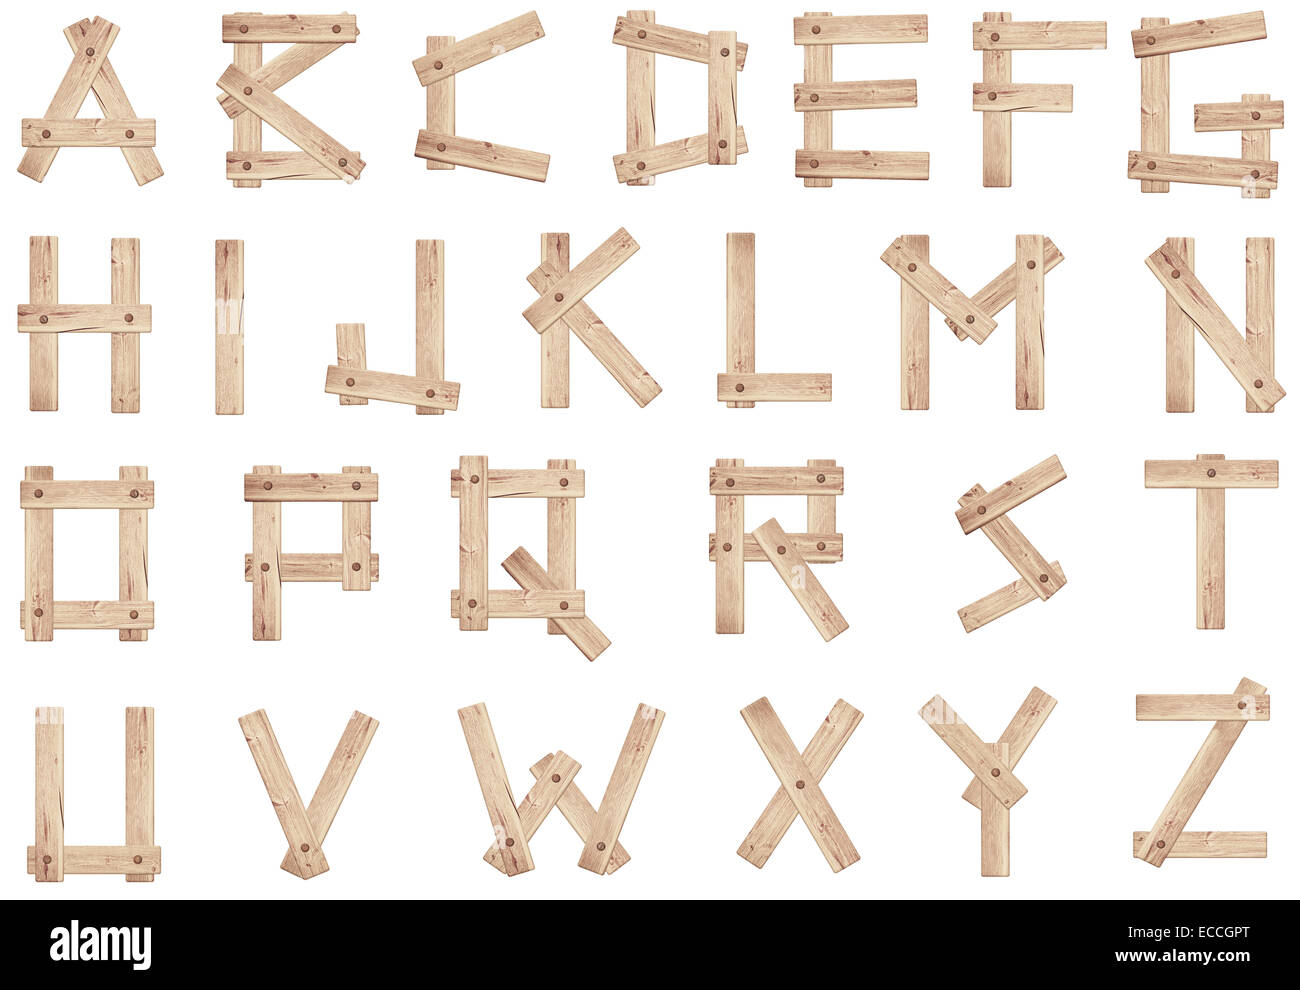 old wooden alphabet letters made of wood planks stock With letters made of wood